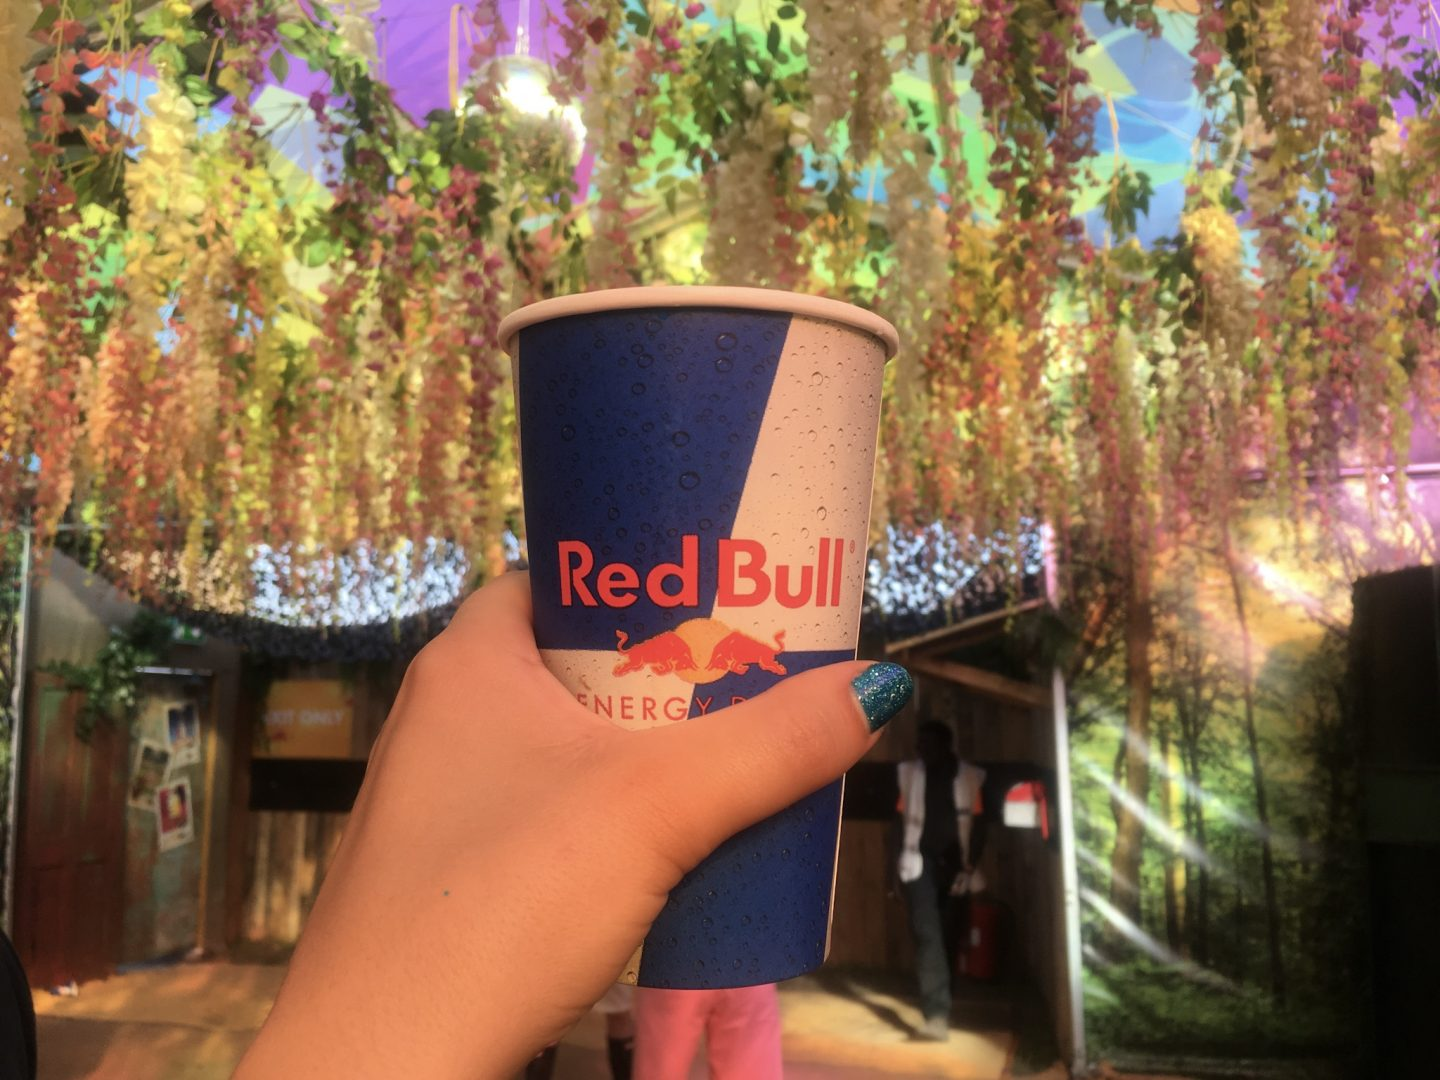 Tropical rumble cocktail at secret Redbull bar at Creamfields festival